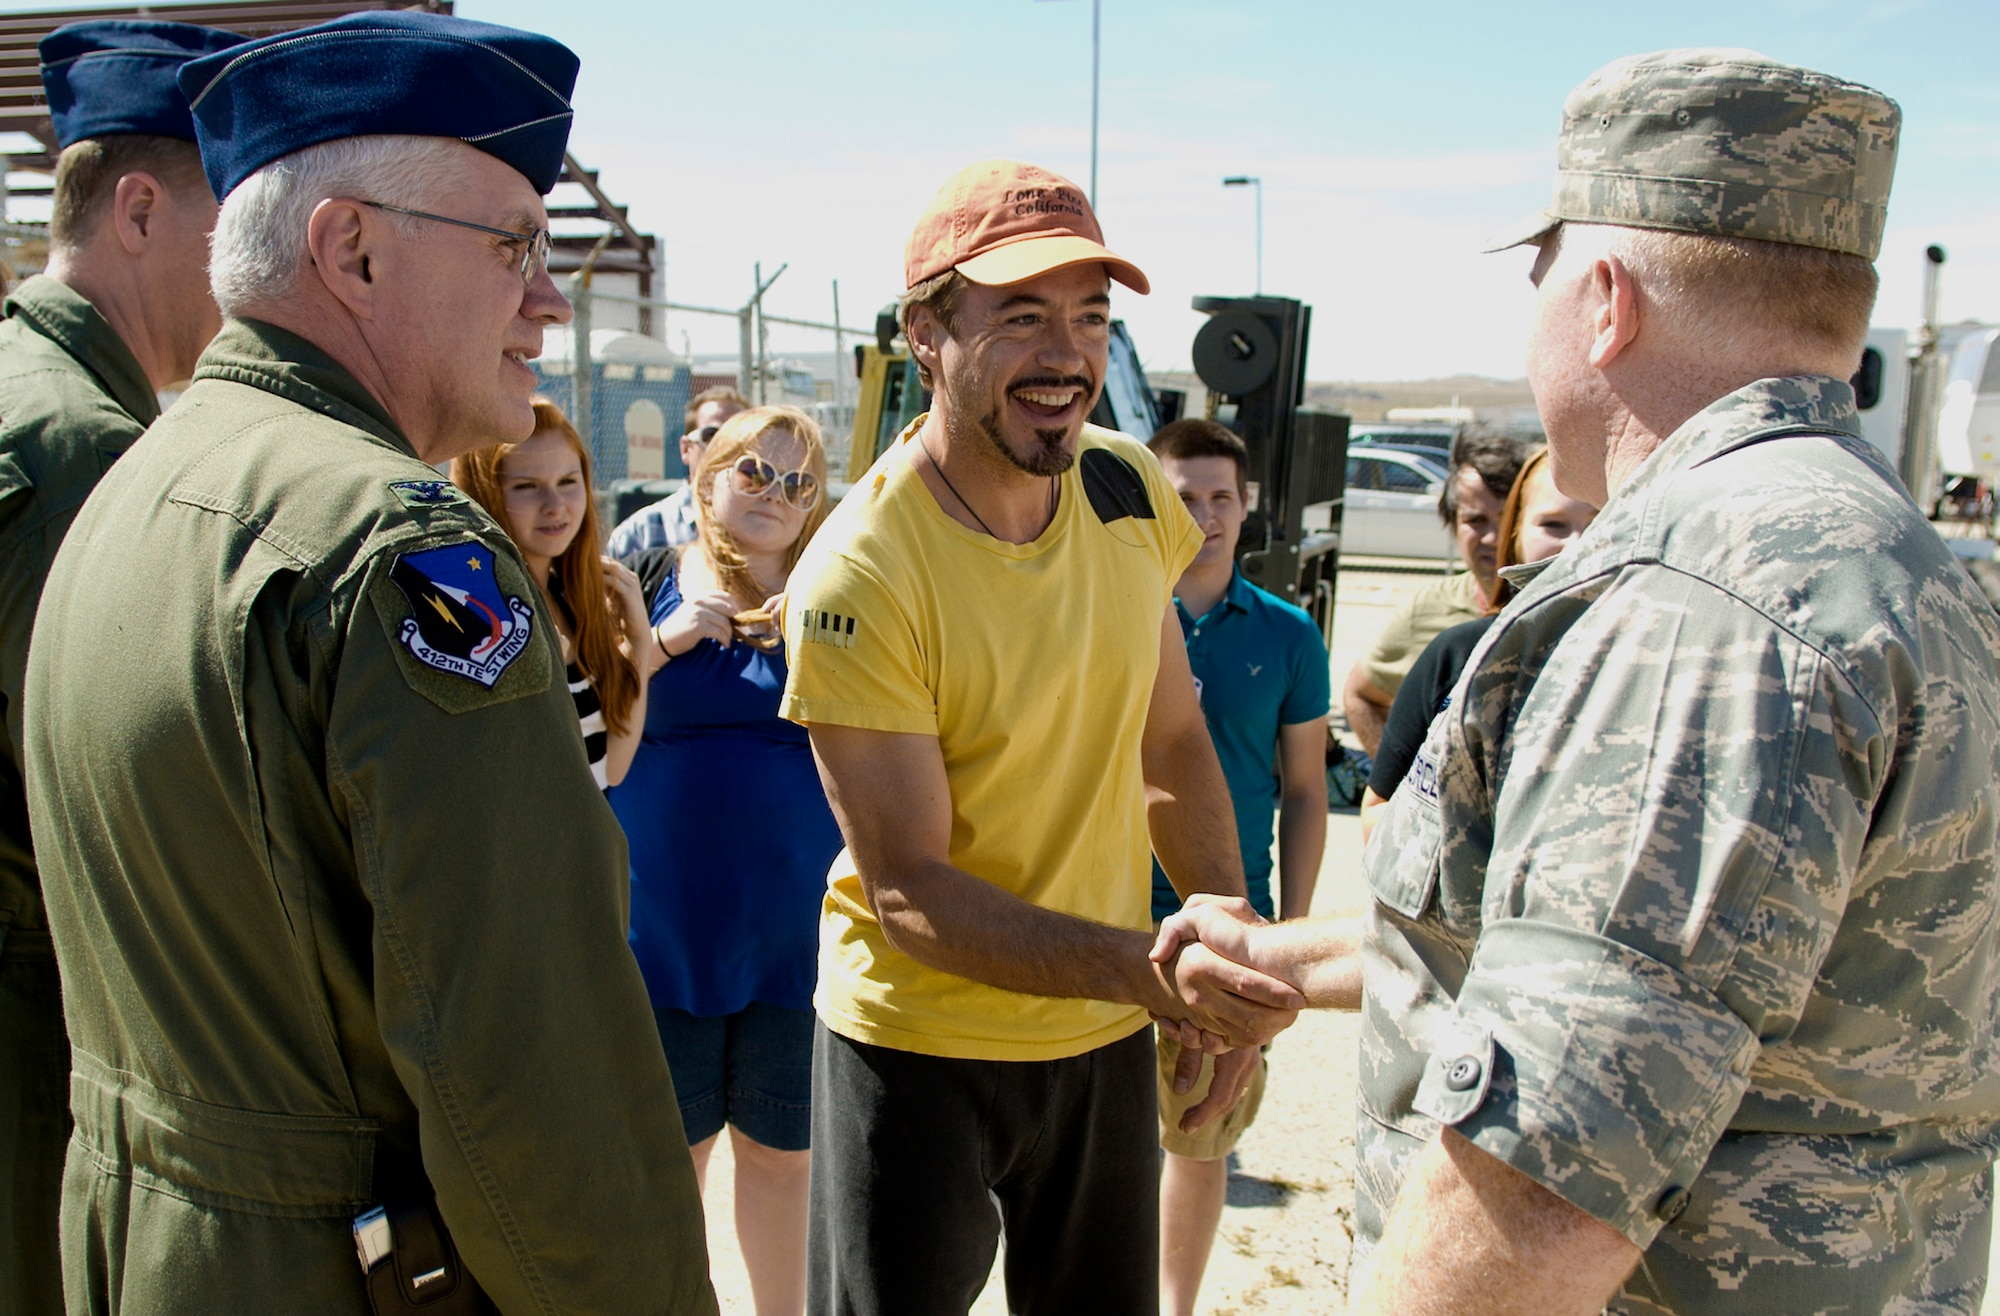 """""""Ironman II"""" actor Robert Downey Jr. (center) shakes hands with Col. Jerry Gandy (right) during a break in filming here May 13 at Edwards Air Force Base, Calif. About 60 members of Edwards AFB participated in the filming as extras and technical advisers. Colonel Gandy is the 95th Air Base Wing commander. (U.S. Air Force photo/Mike Cassidy)"""